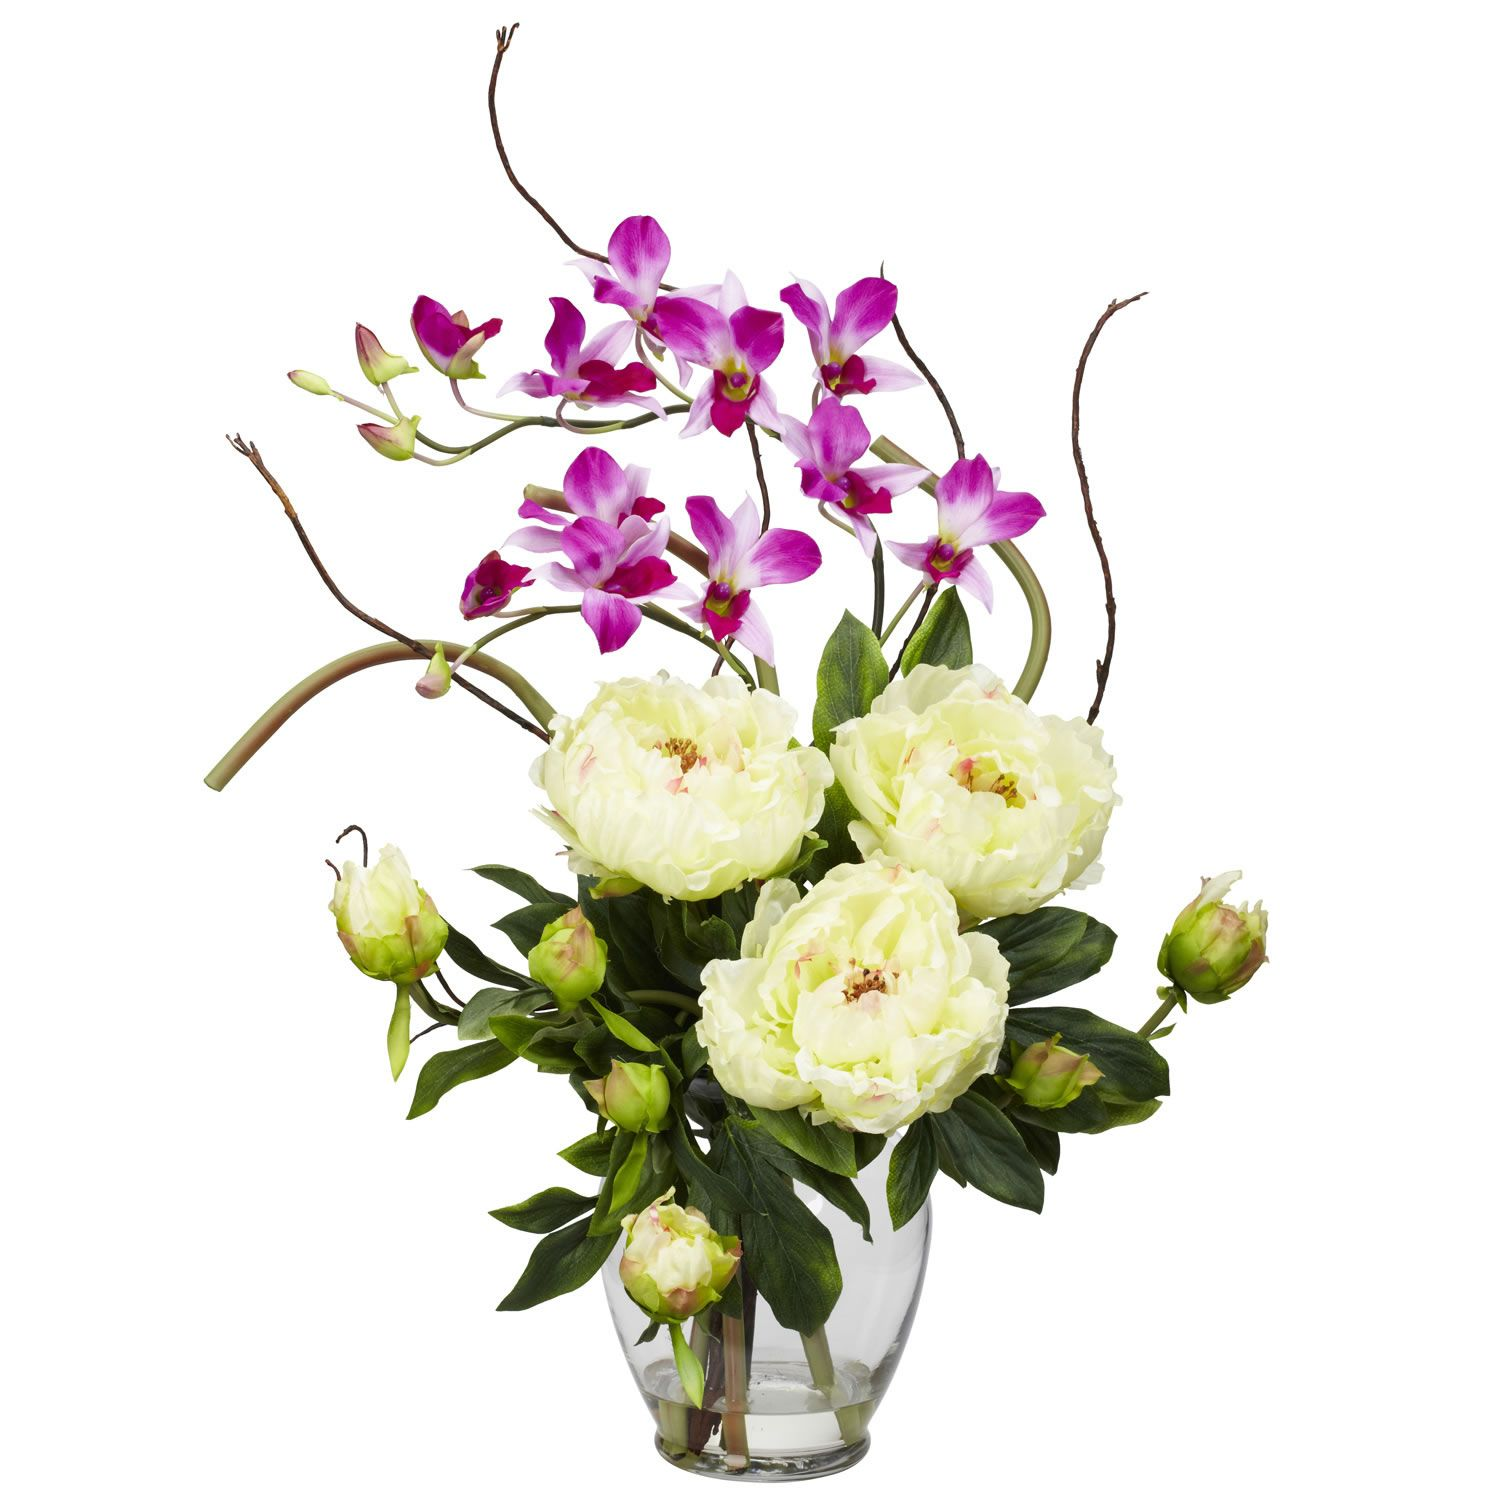 Silk flower arrangements roll over product image to zoom for A arrangement florist flowers